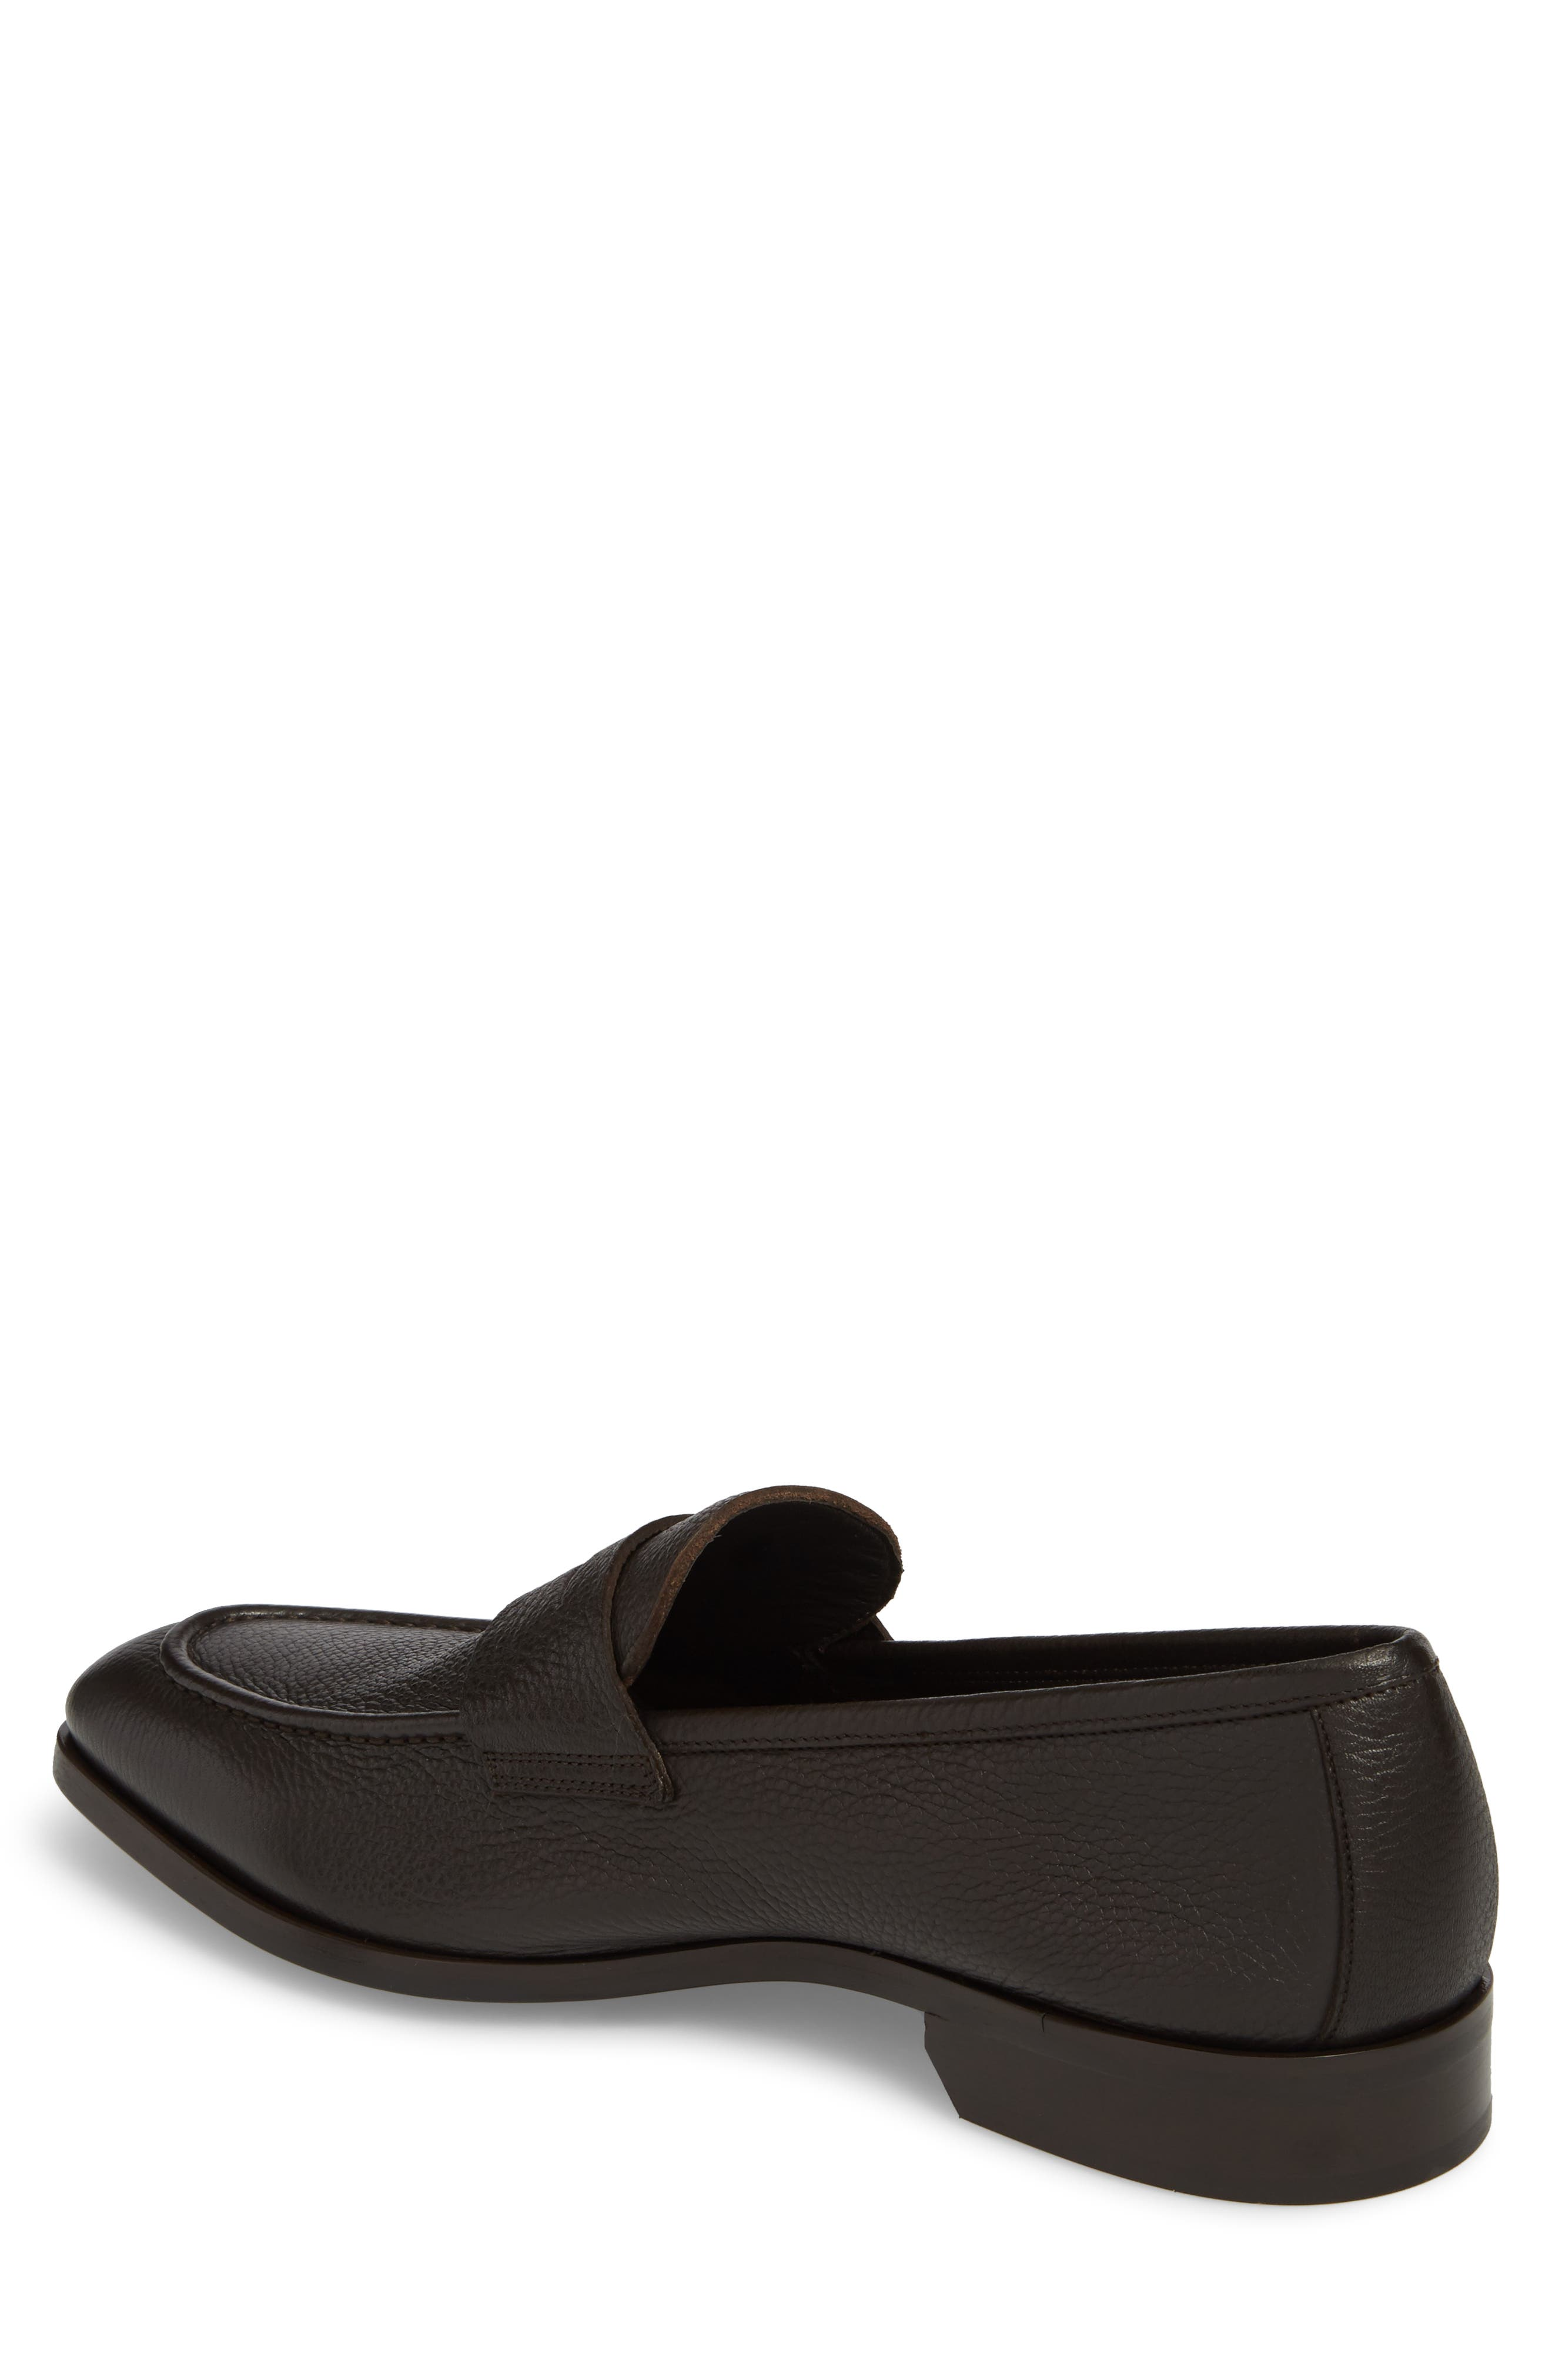 Johnson Penny Loafer,                             Alternate thumbnail 2, color,                             Tmoro Leather